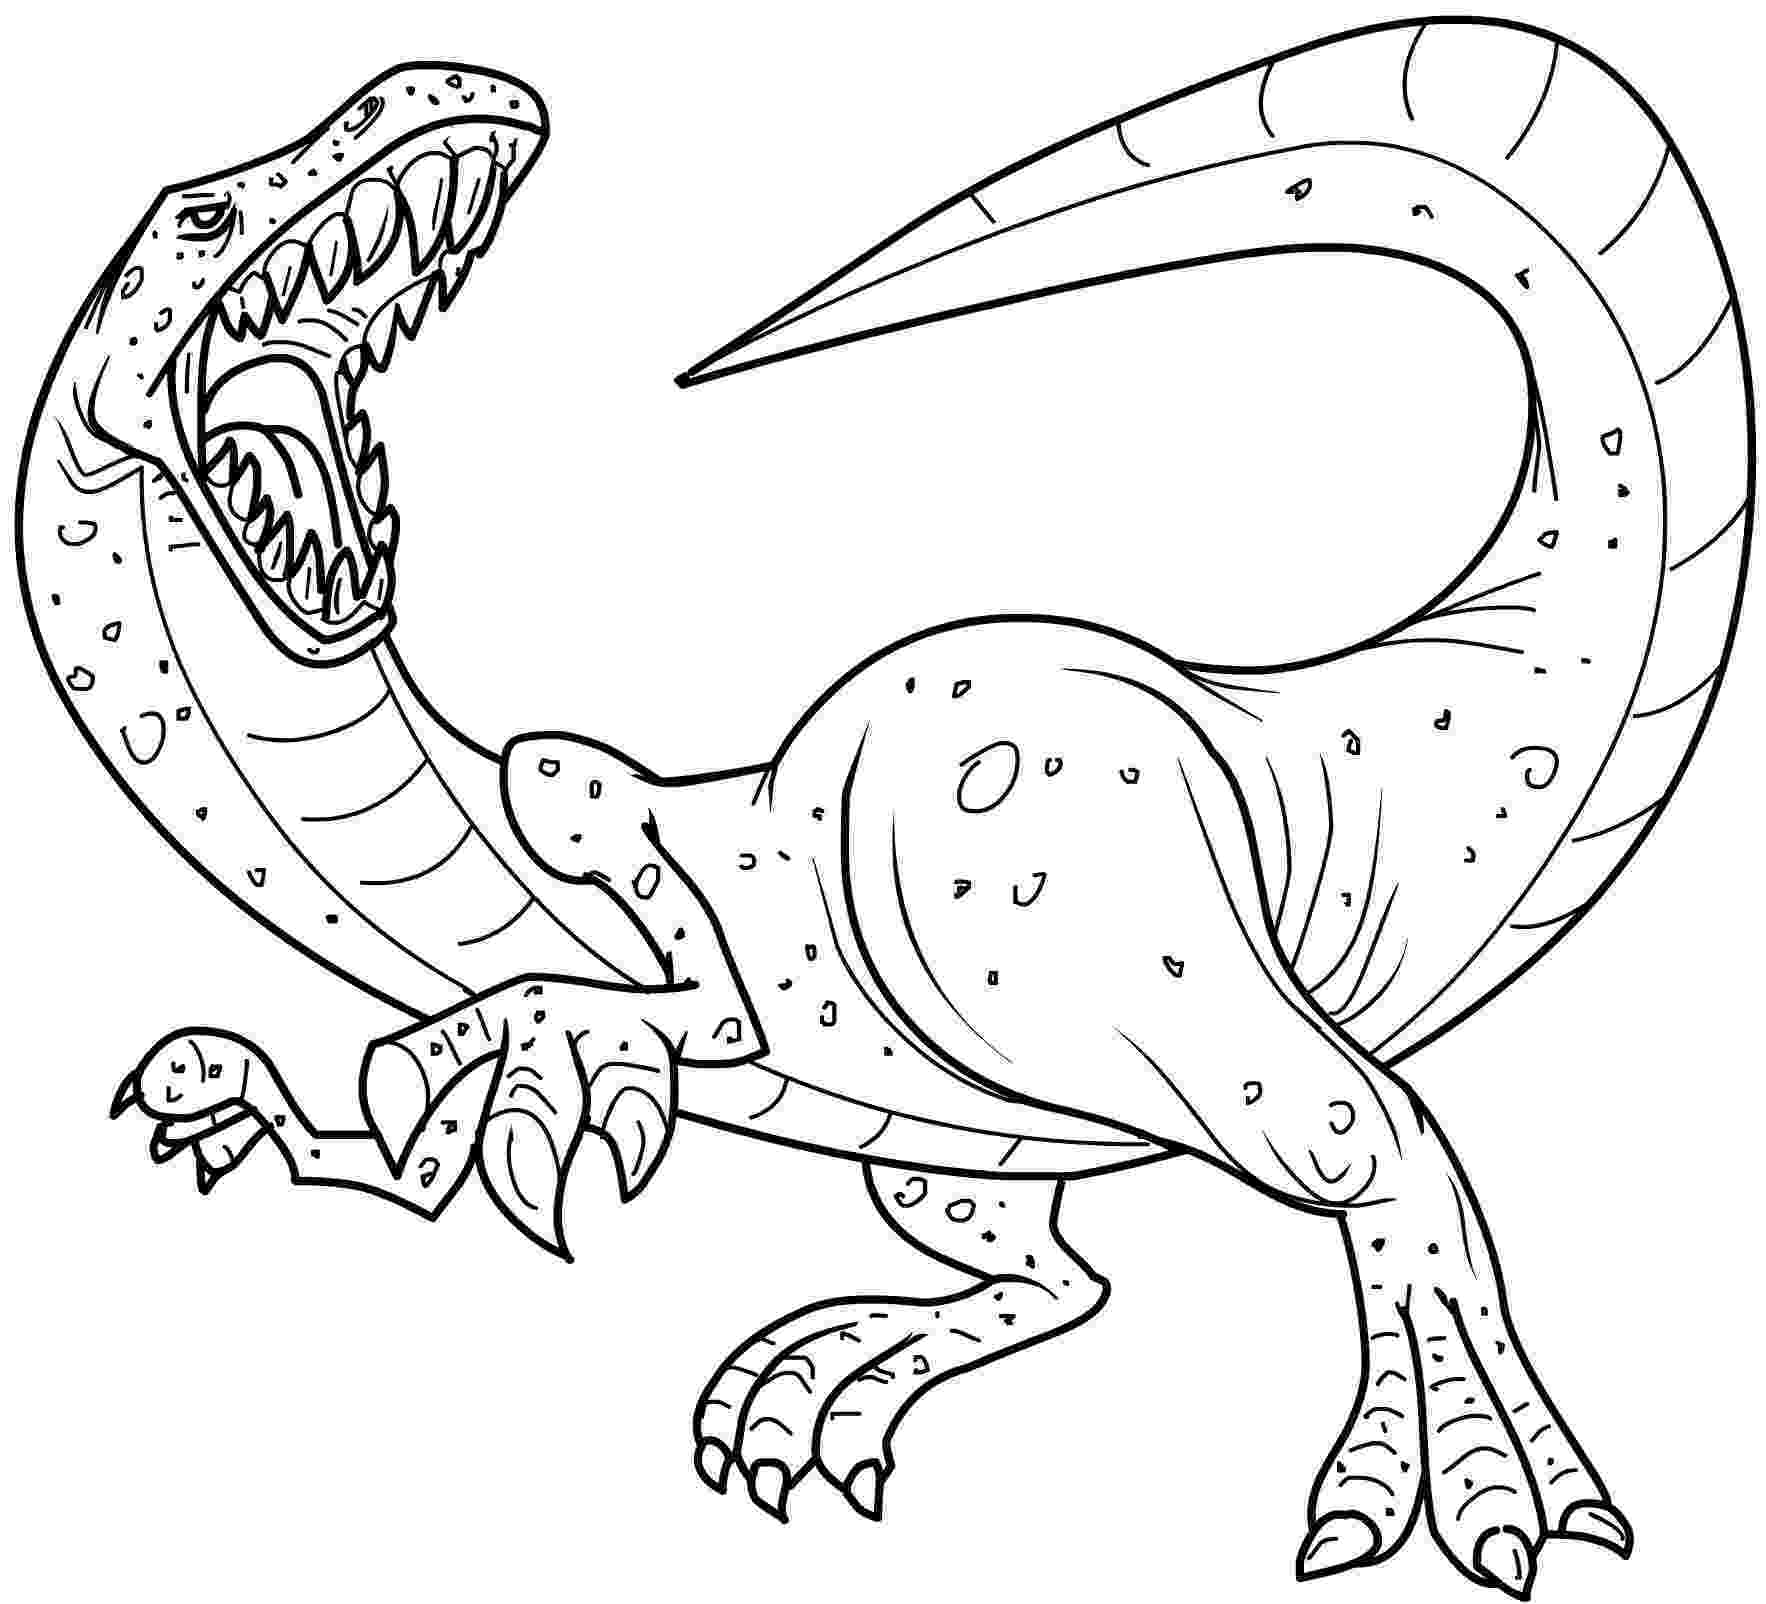 color dinosaur extinct animals 36 printable dinosaur coloring pages color dinosaur